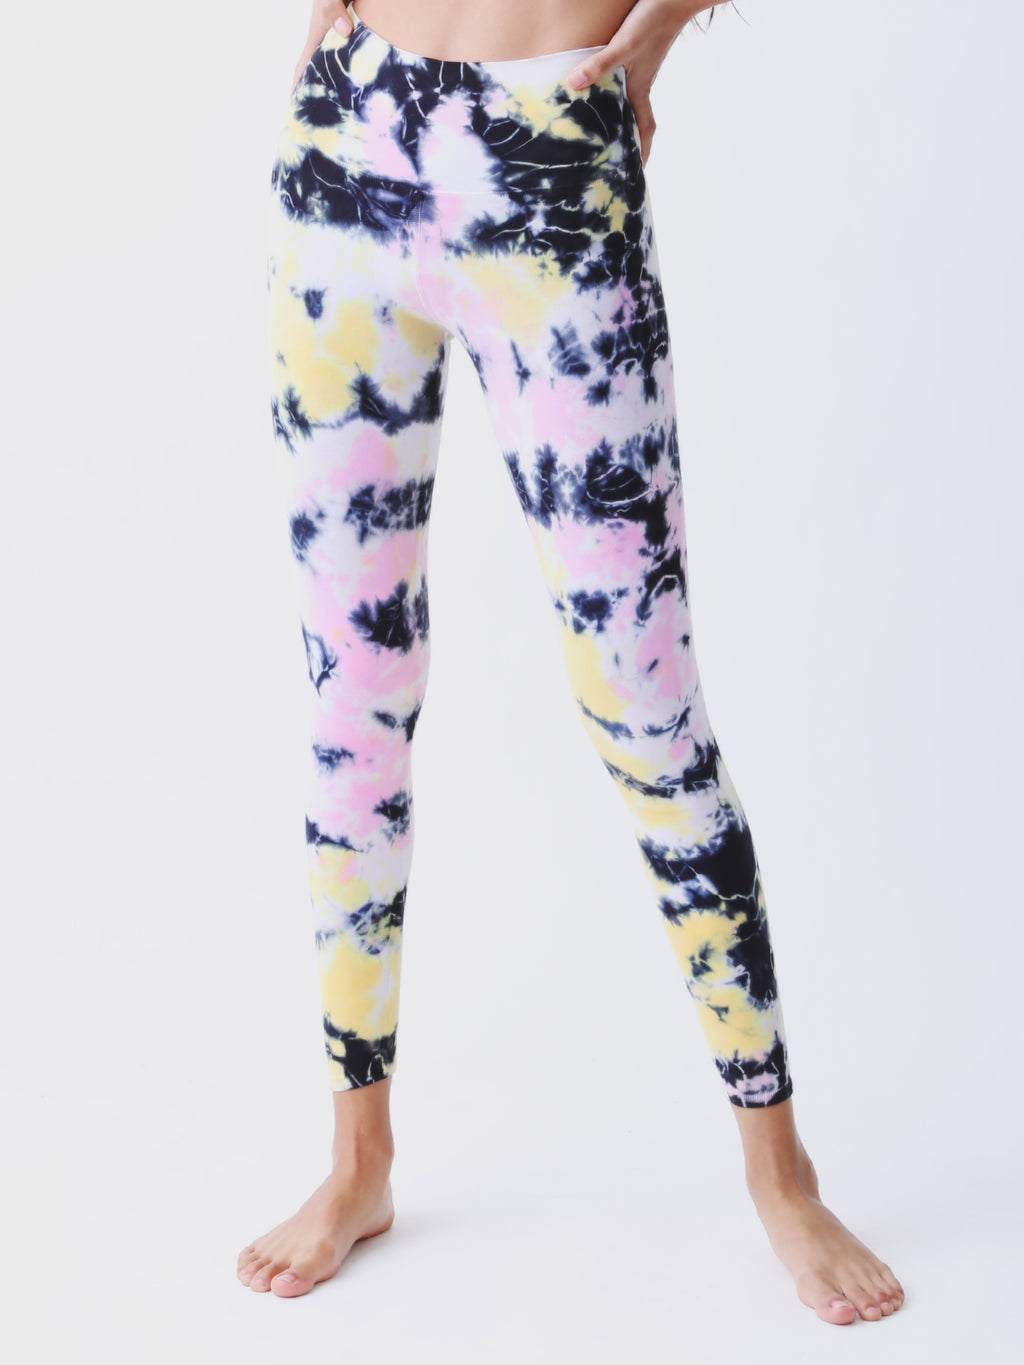 Sunset Legging - Poppy Pink / Marigold / Onyx